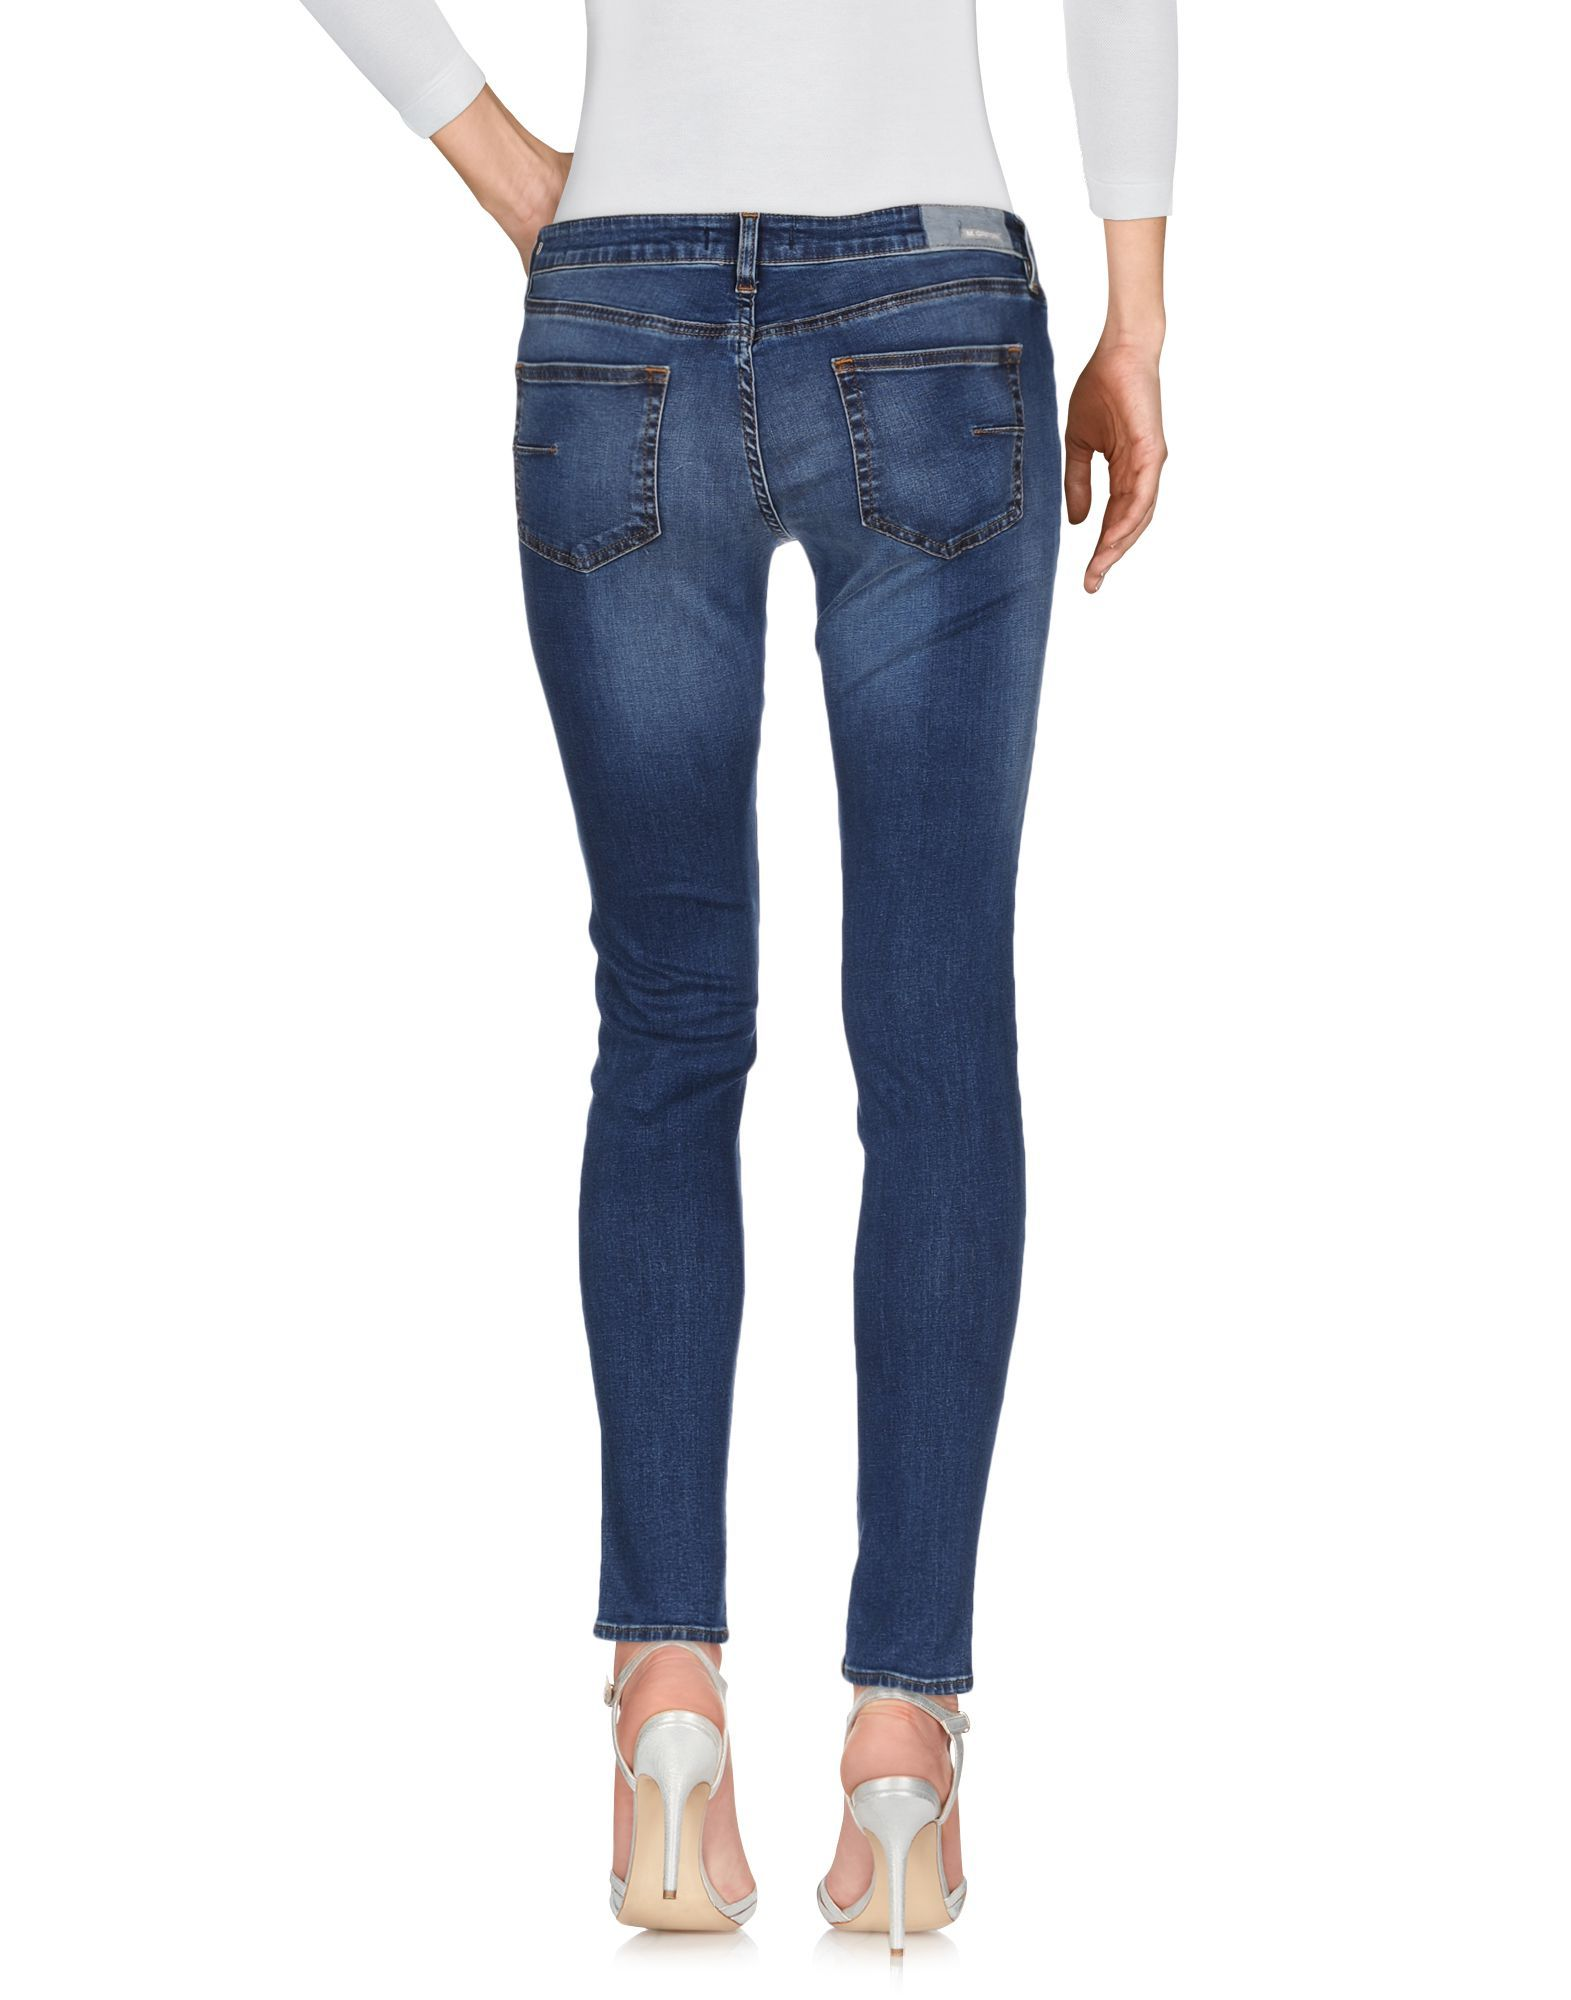 Mauro Grifoni Blue Cotton Skinny Jeans